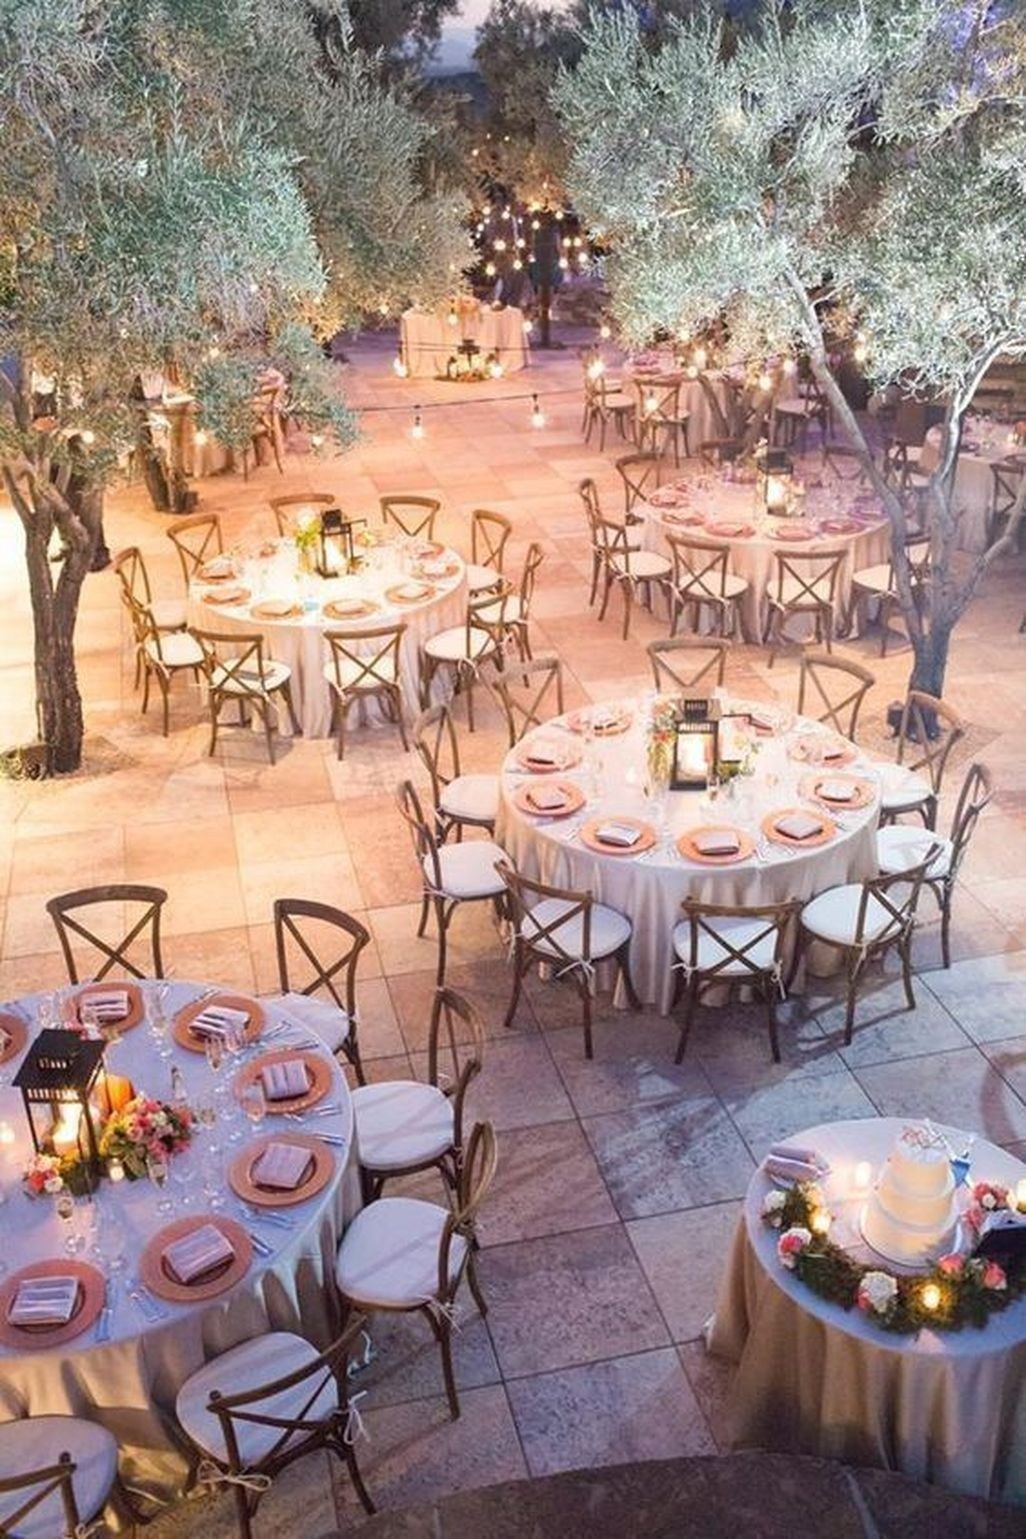 46 Wedding Reseption Centerpieces Inspirations Ideas #weddingreception